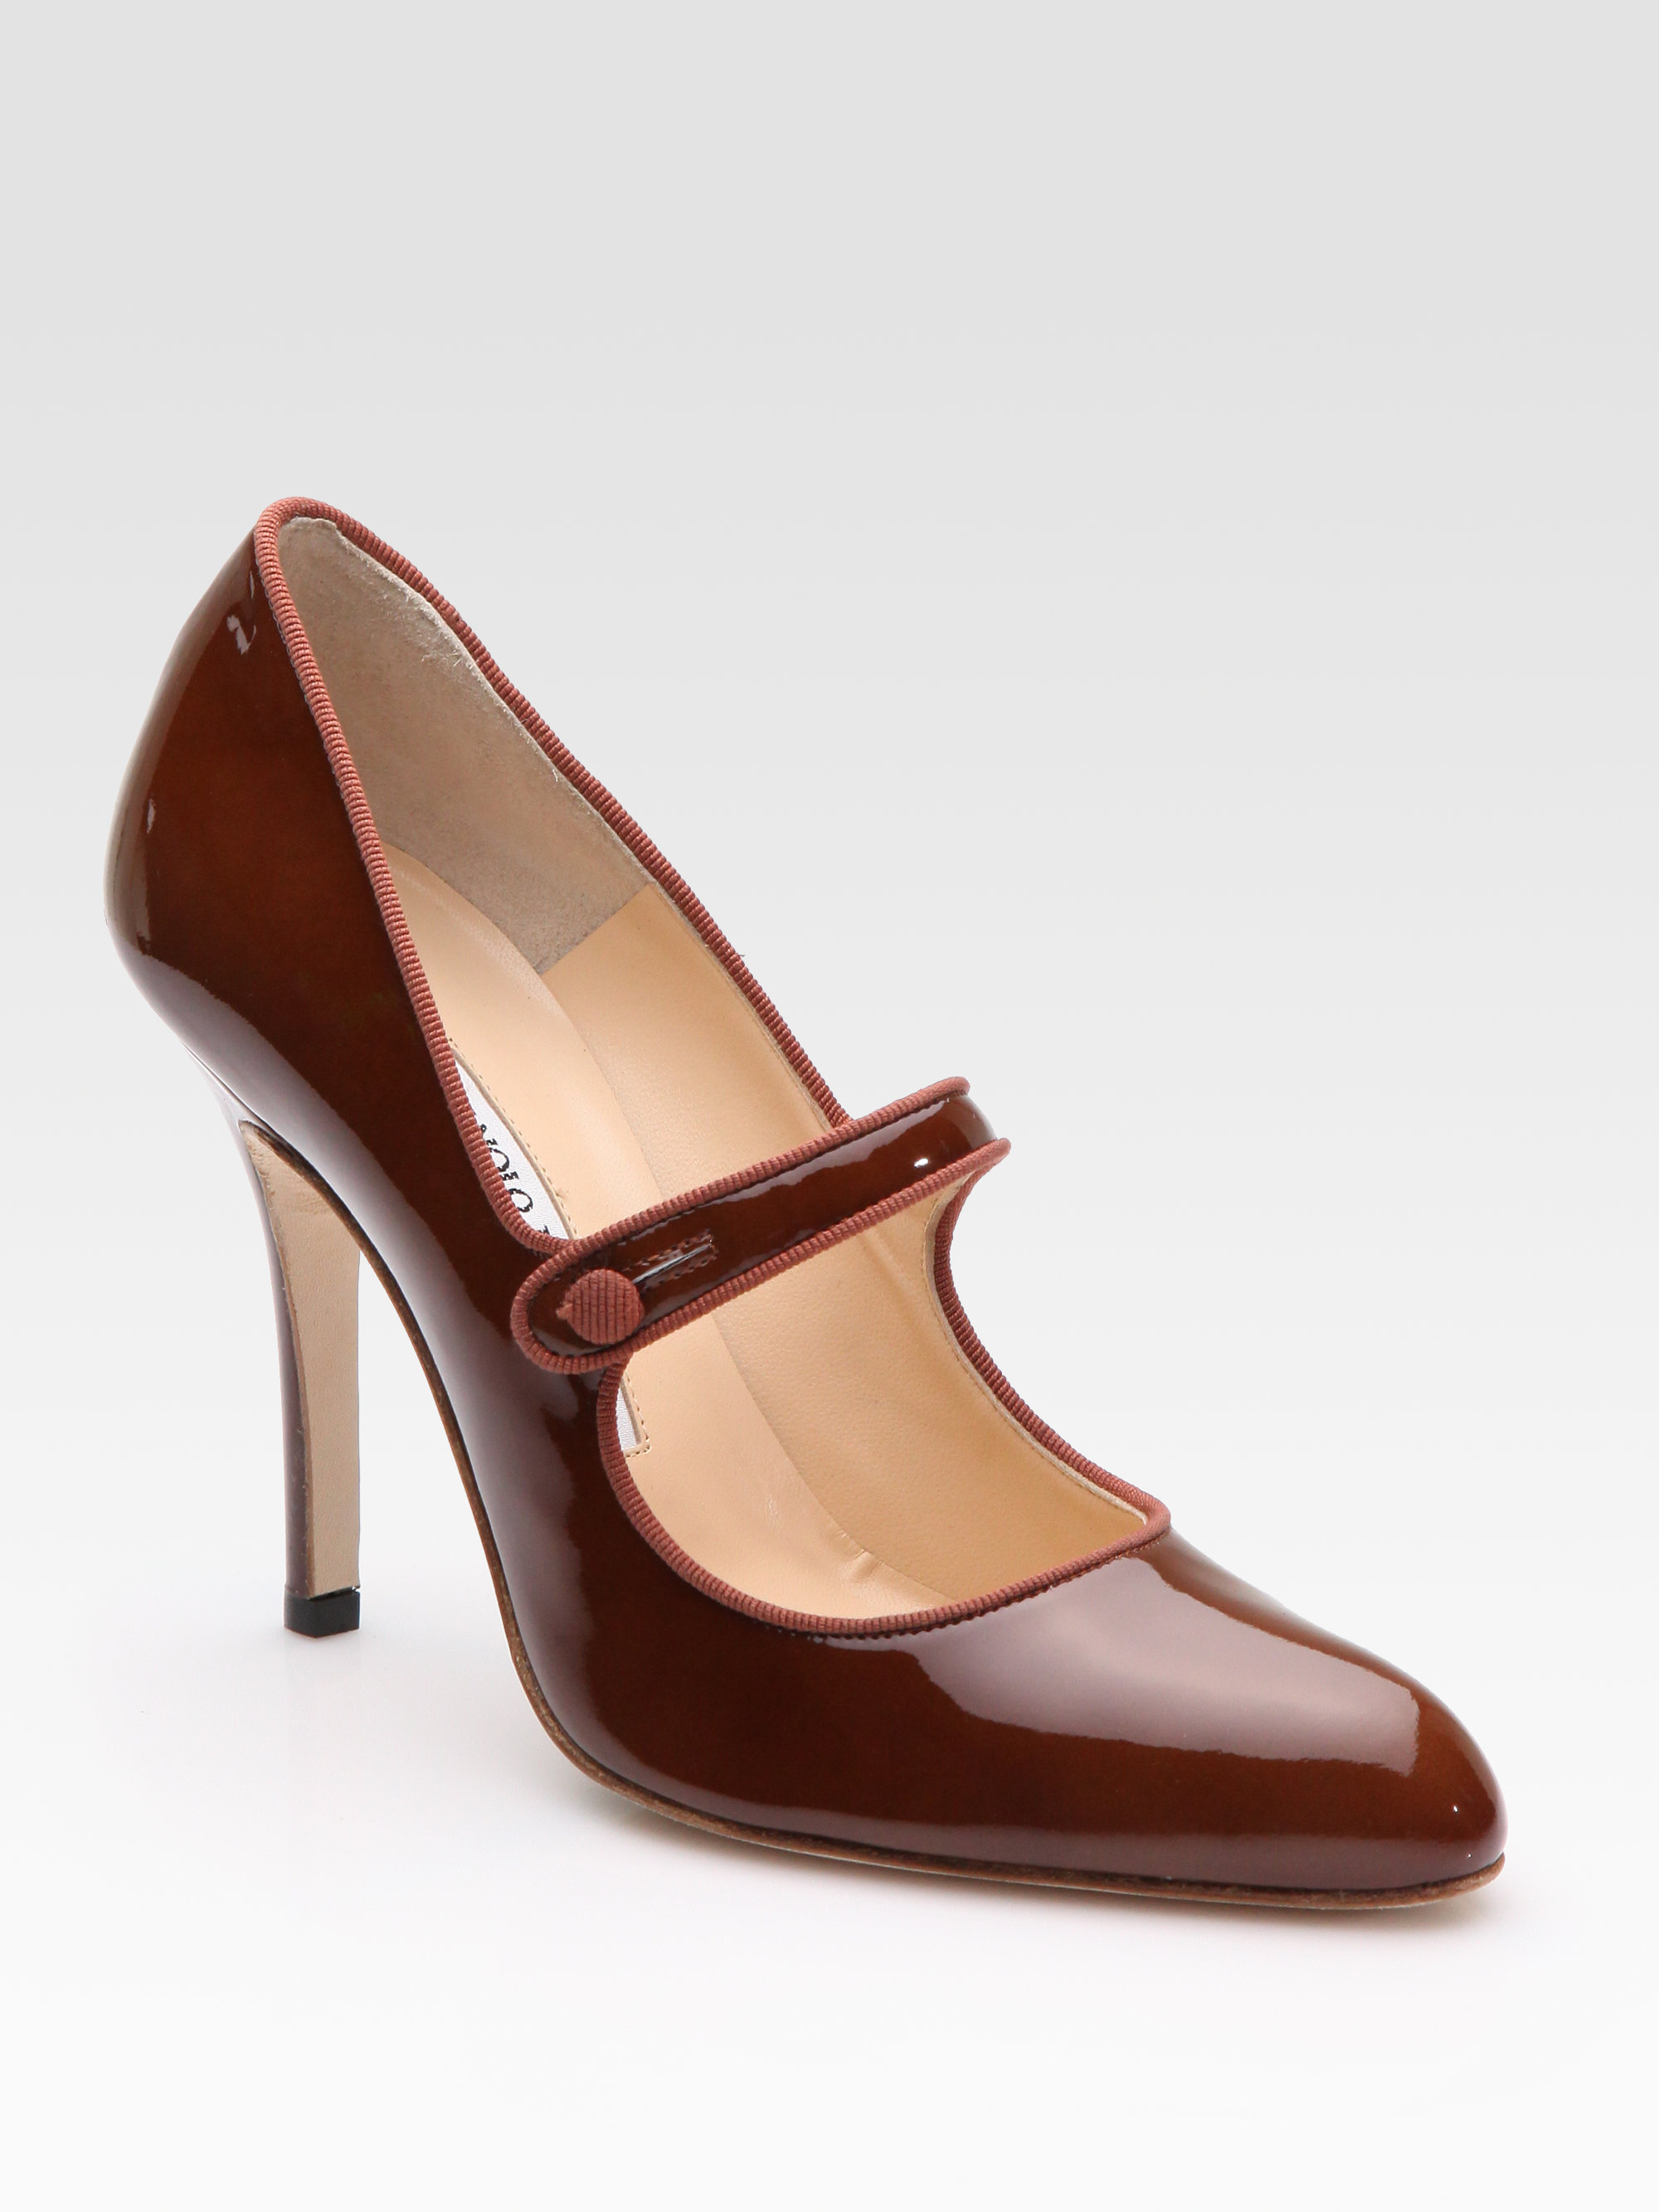 Black Mary Jane Shoes With Small Heel